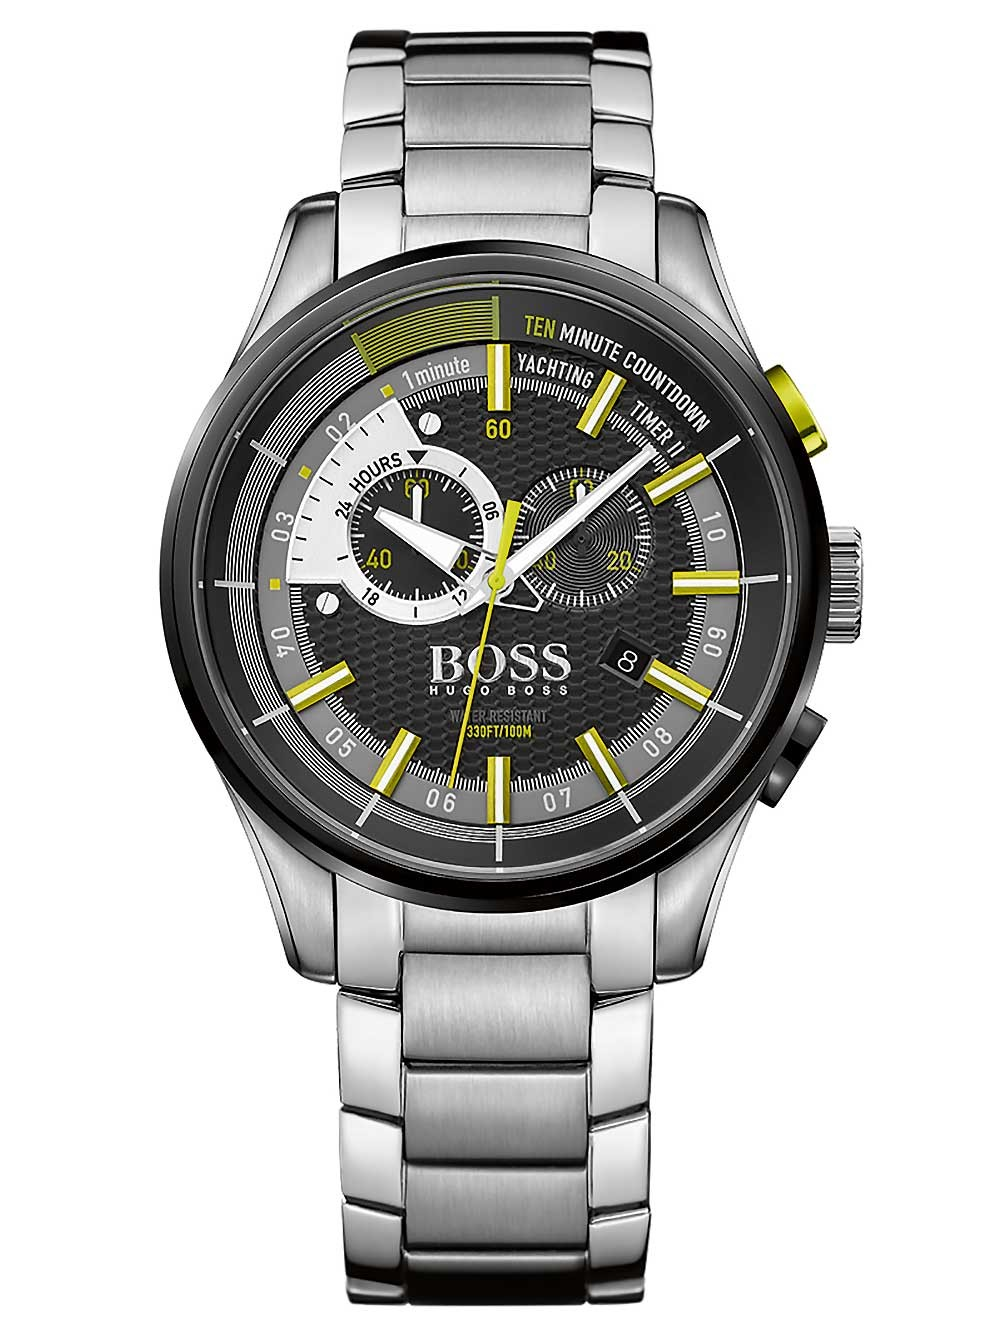 ceas barbatesc hugo boss 1513336 yachting timer 46mm 10atm